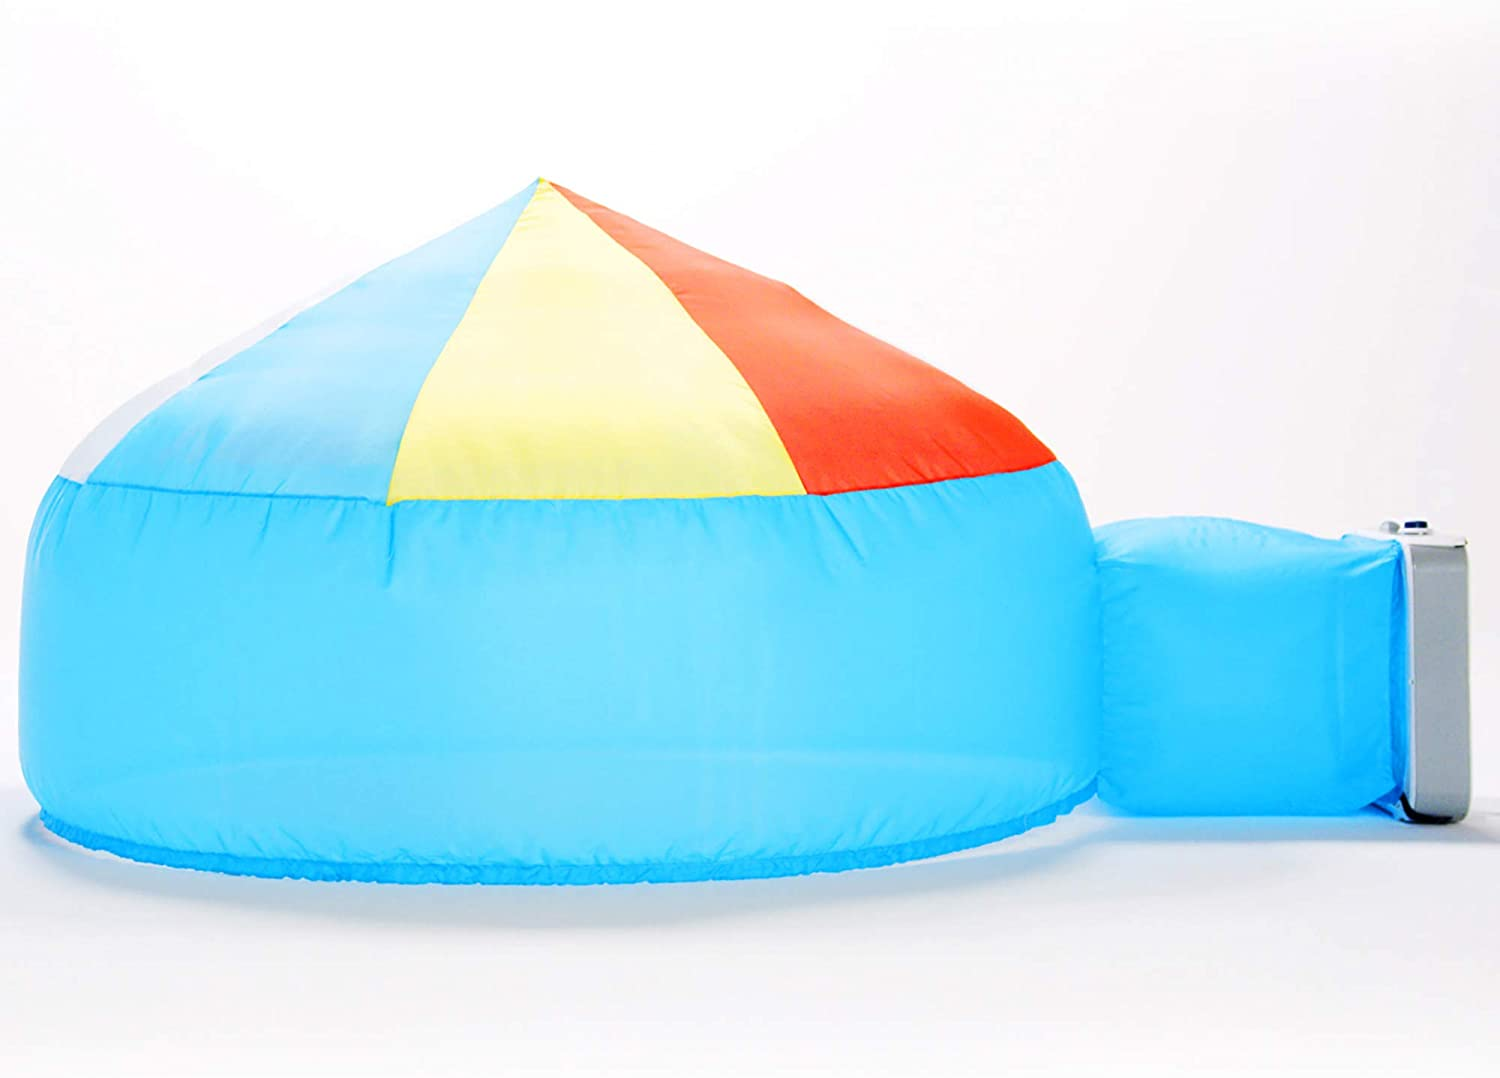 The Original AirFort Build A Fort in 30 Seconds, Inflatable for Kids, Beach Ball Blue